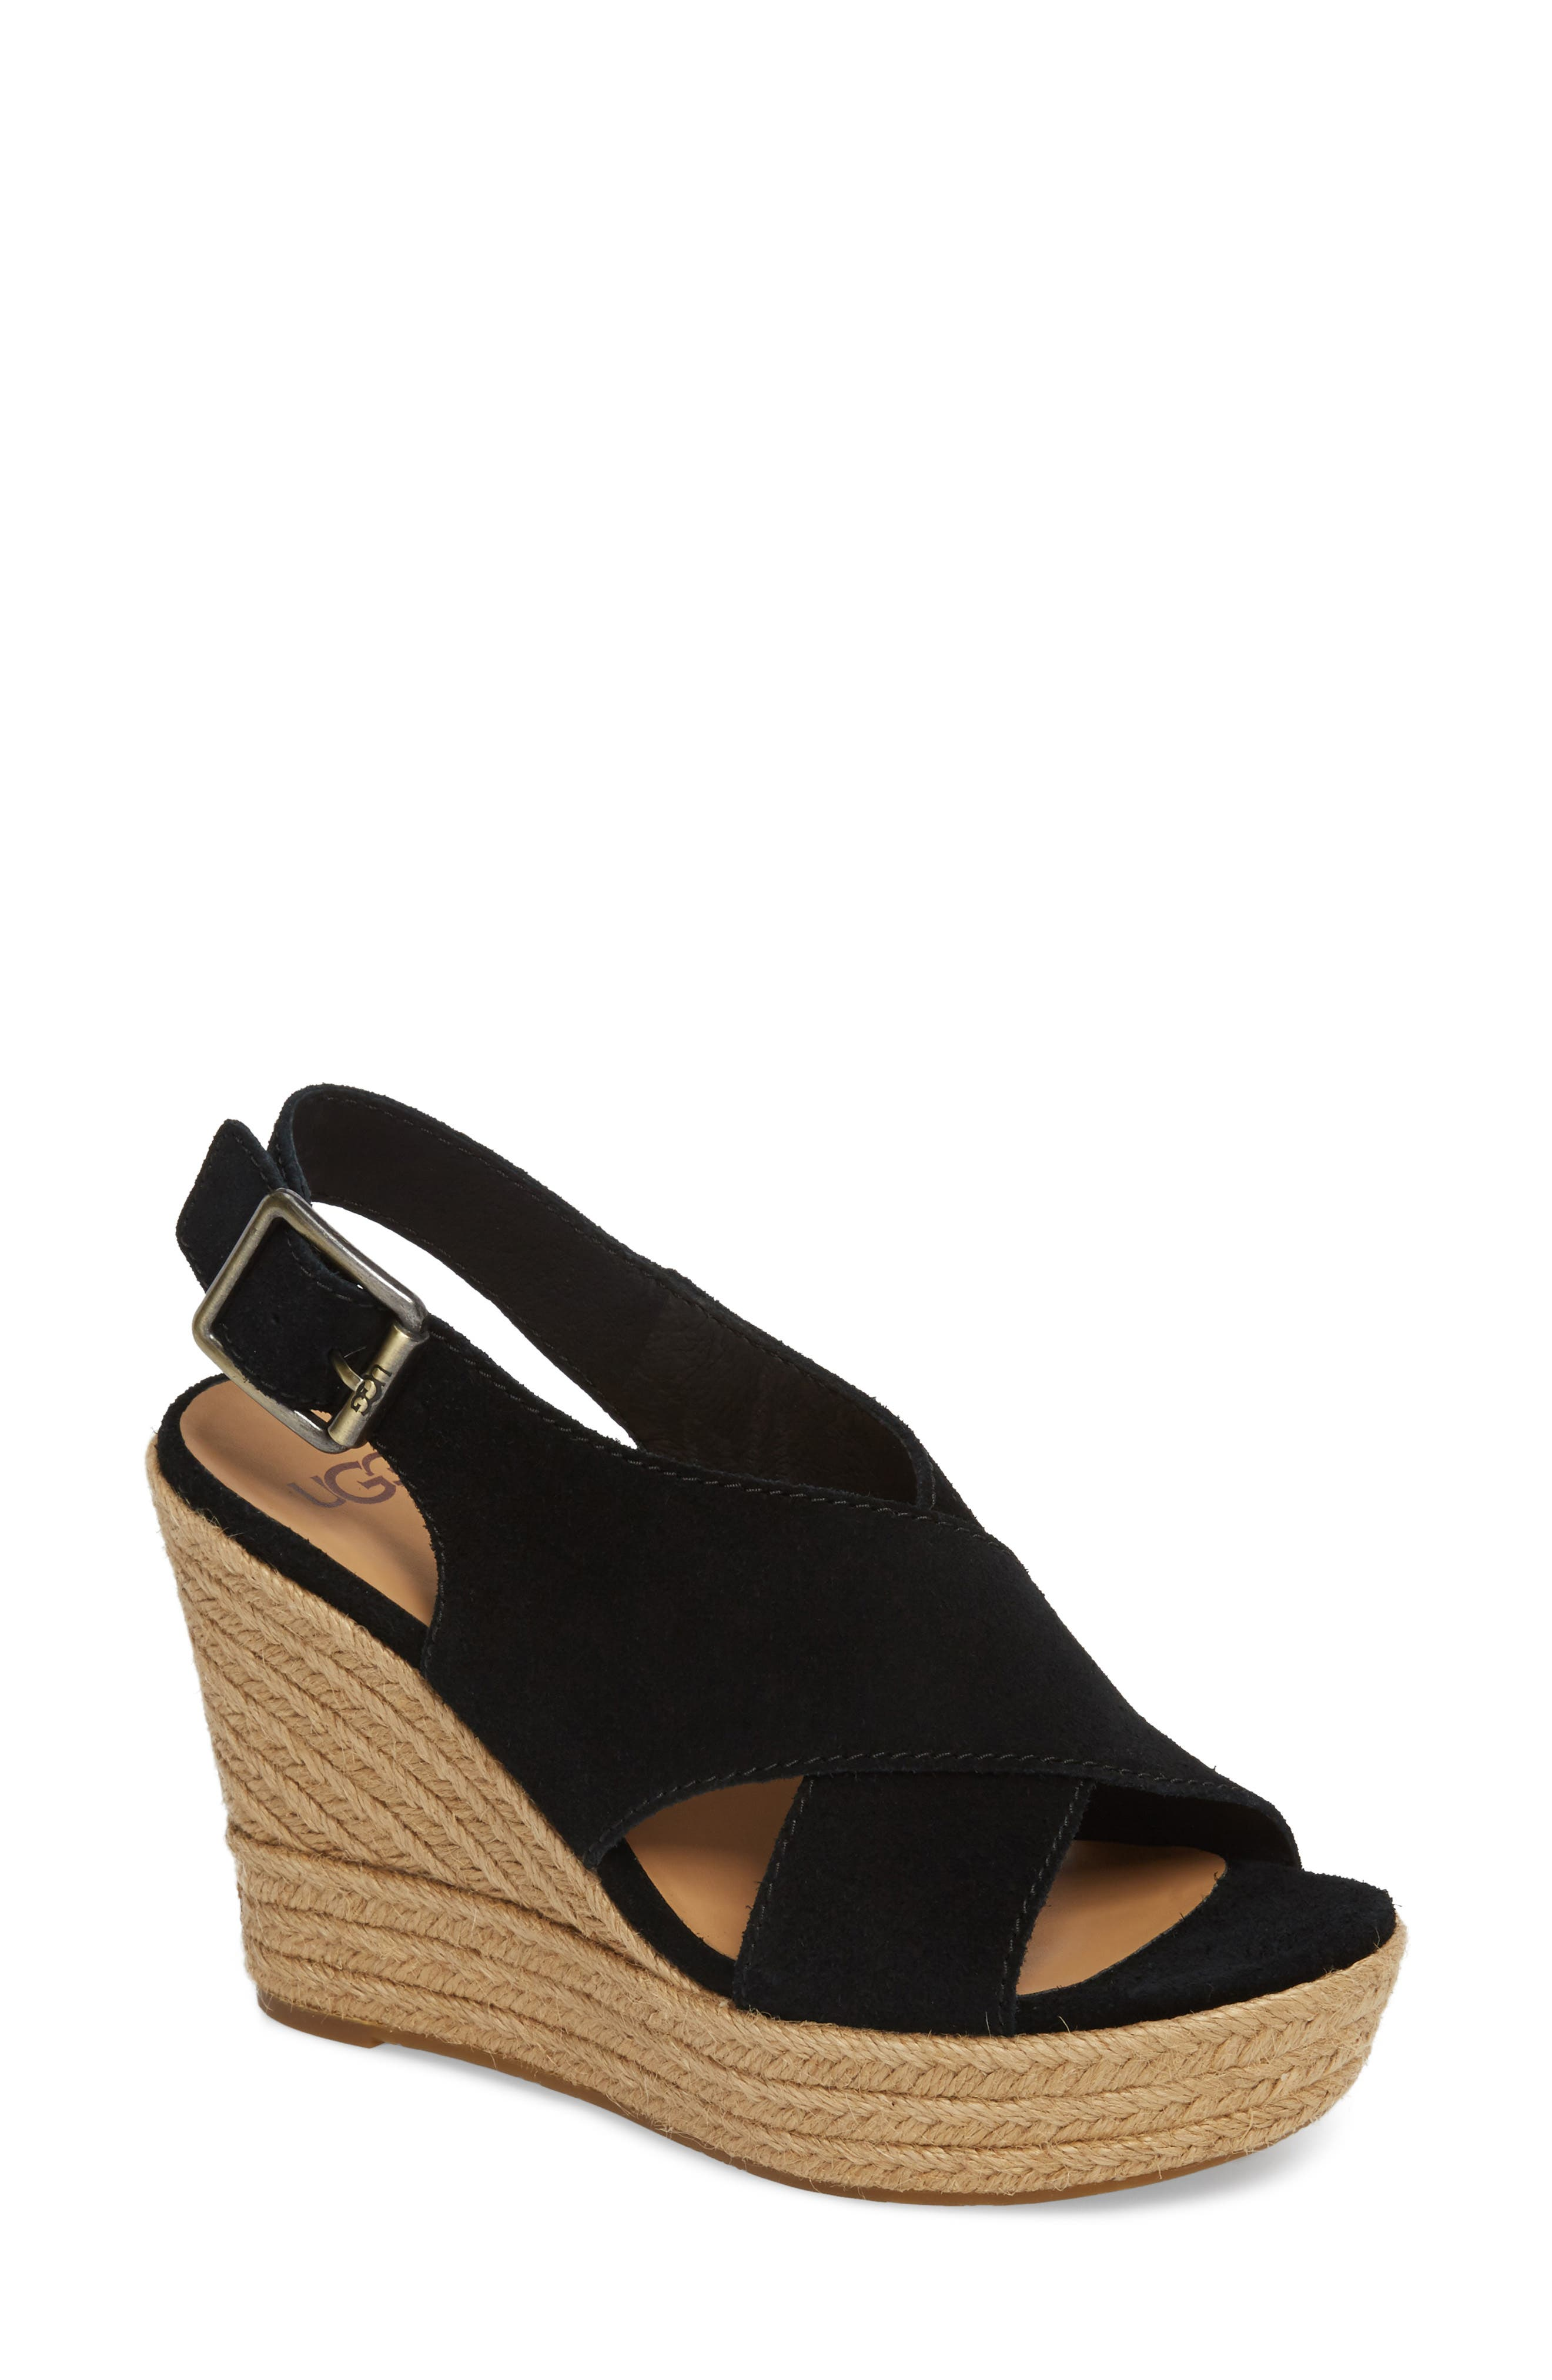 Harlow Platform Wedge Sandal,                         Main,                         color, 001